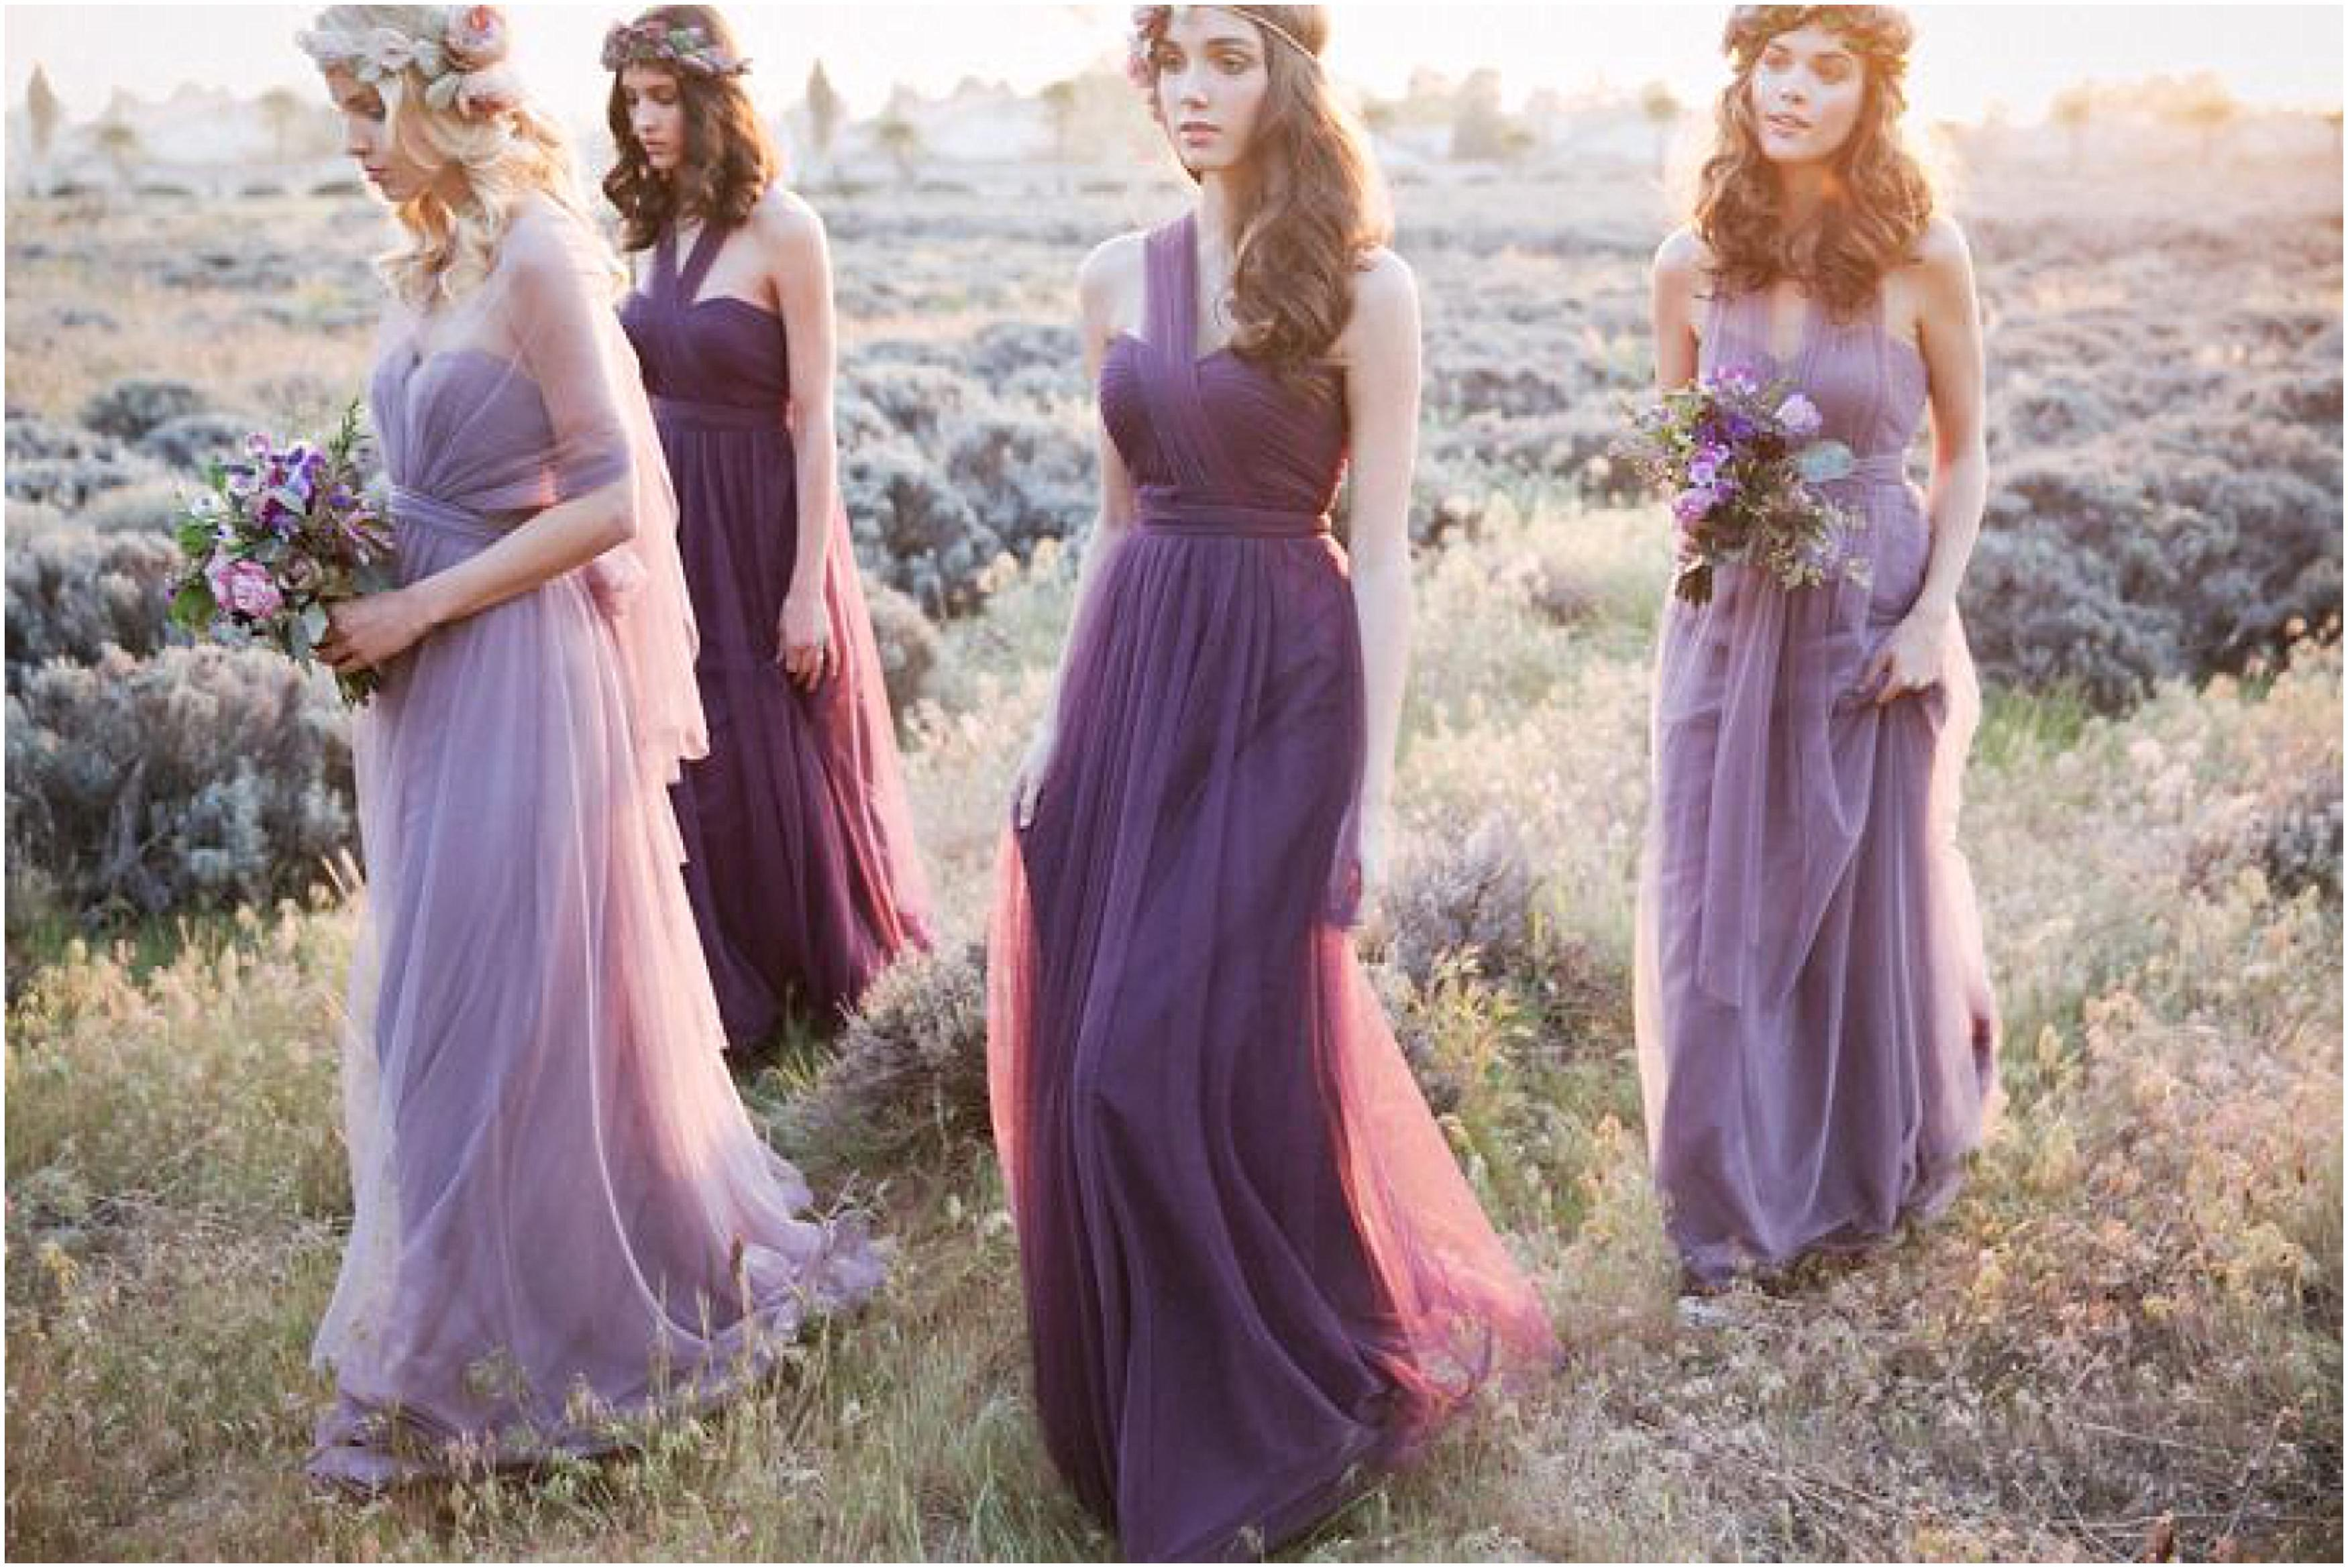 Lavender cheap long bridesmaid dresses 2016 sheer tulle a line lavender cheap long bridesmaid dresses 2016 sheer tulle a line maid of honor toast convertible dresses formal wedding party gowns custom casual bridesmaid ombrellifo Images